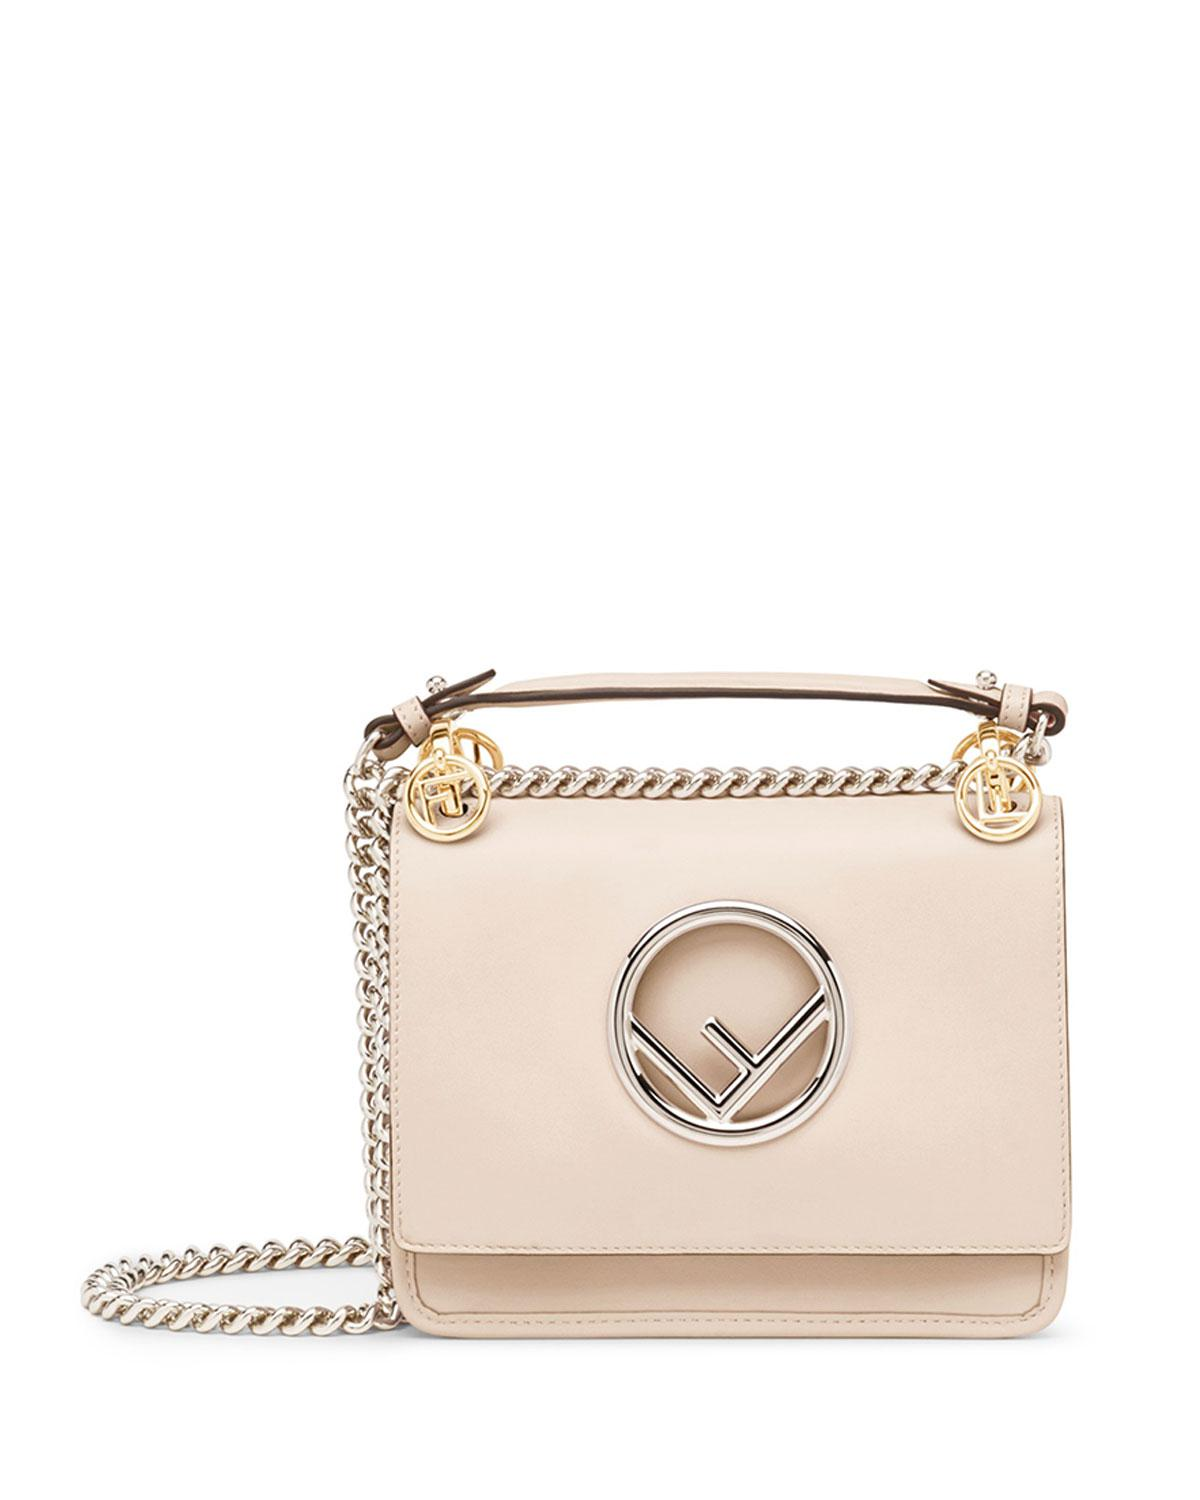 1c20710752c1 Lyst - Fendi Kan I Small Leather Shoulder Bag With Logo in Pink